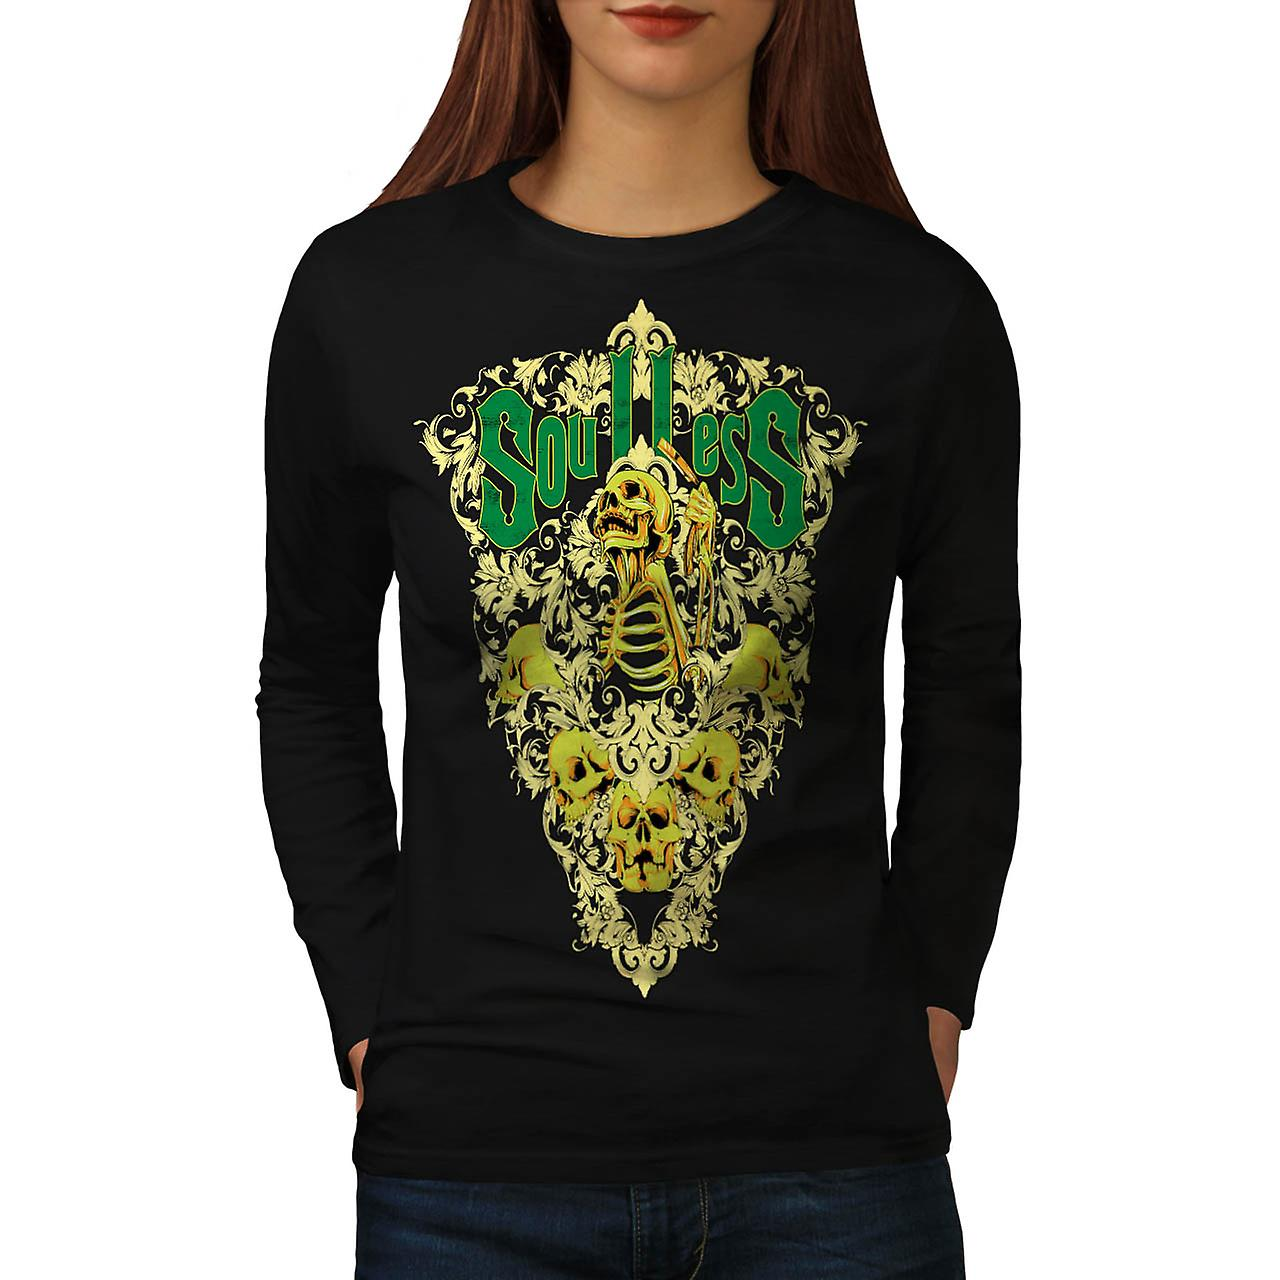 Soul Less Death Skull Grave Yard Women Black Long Sleeve T-shirt | Wellcoda